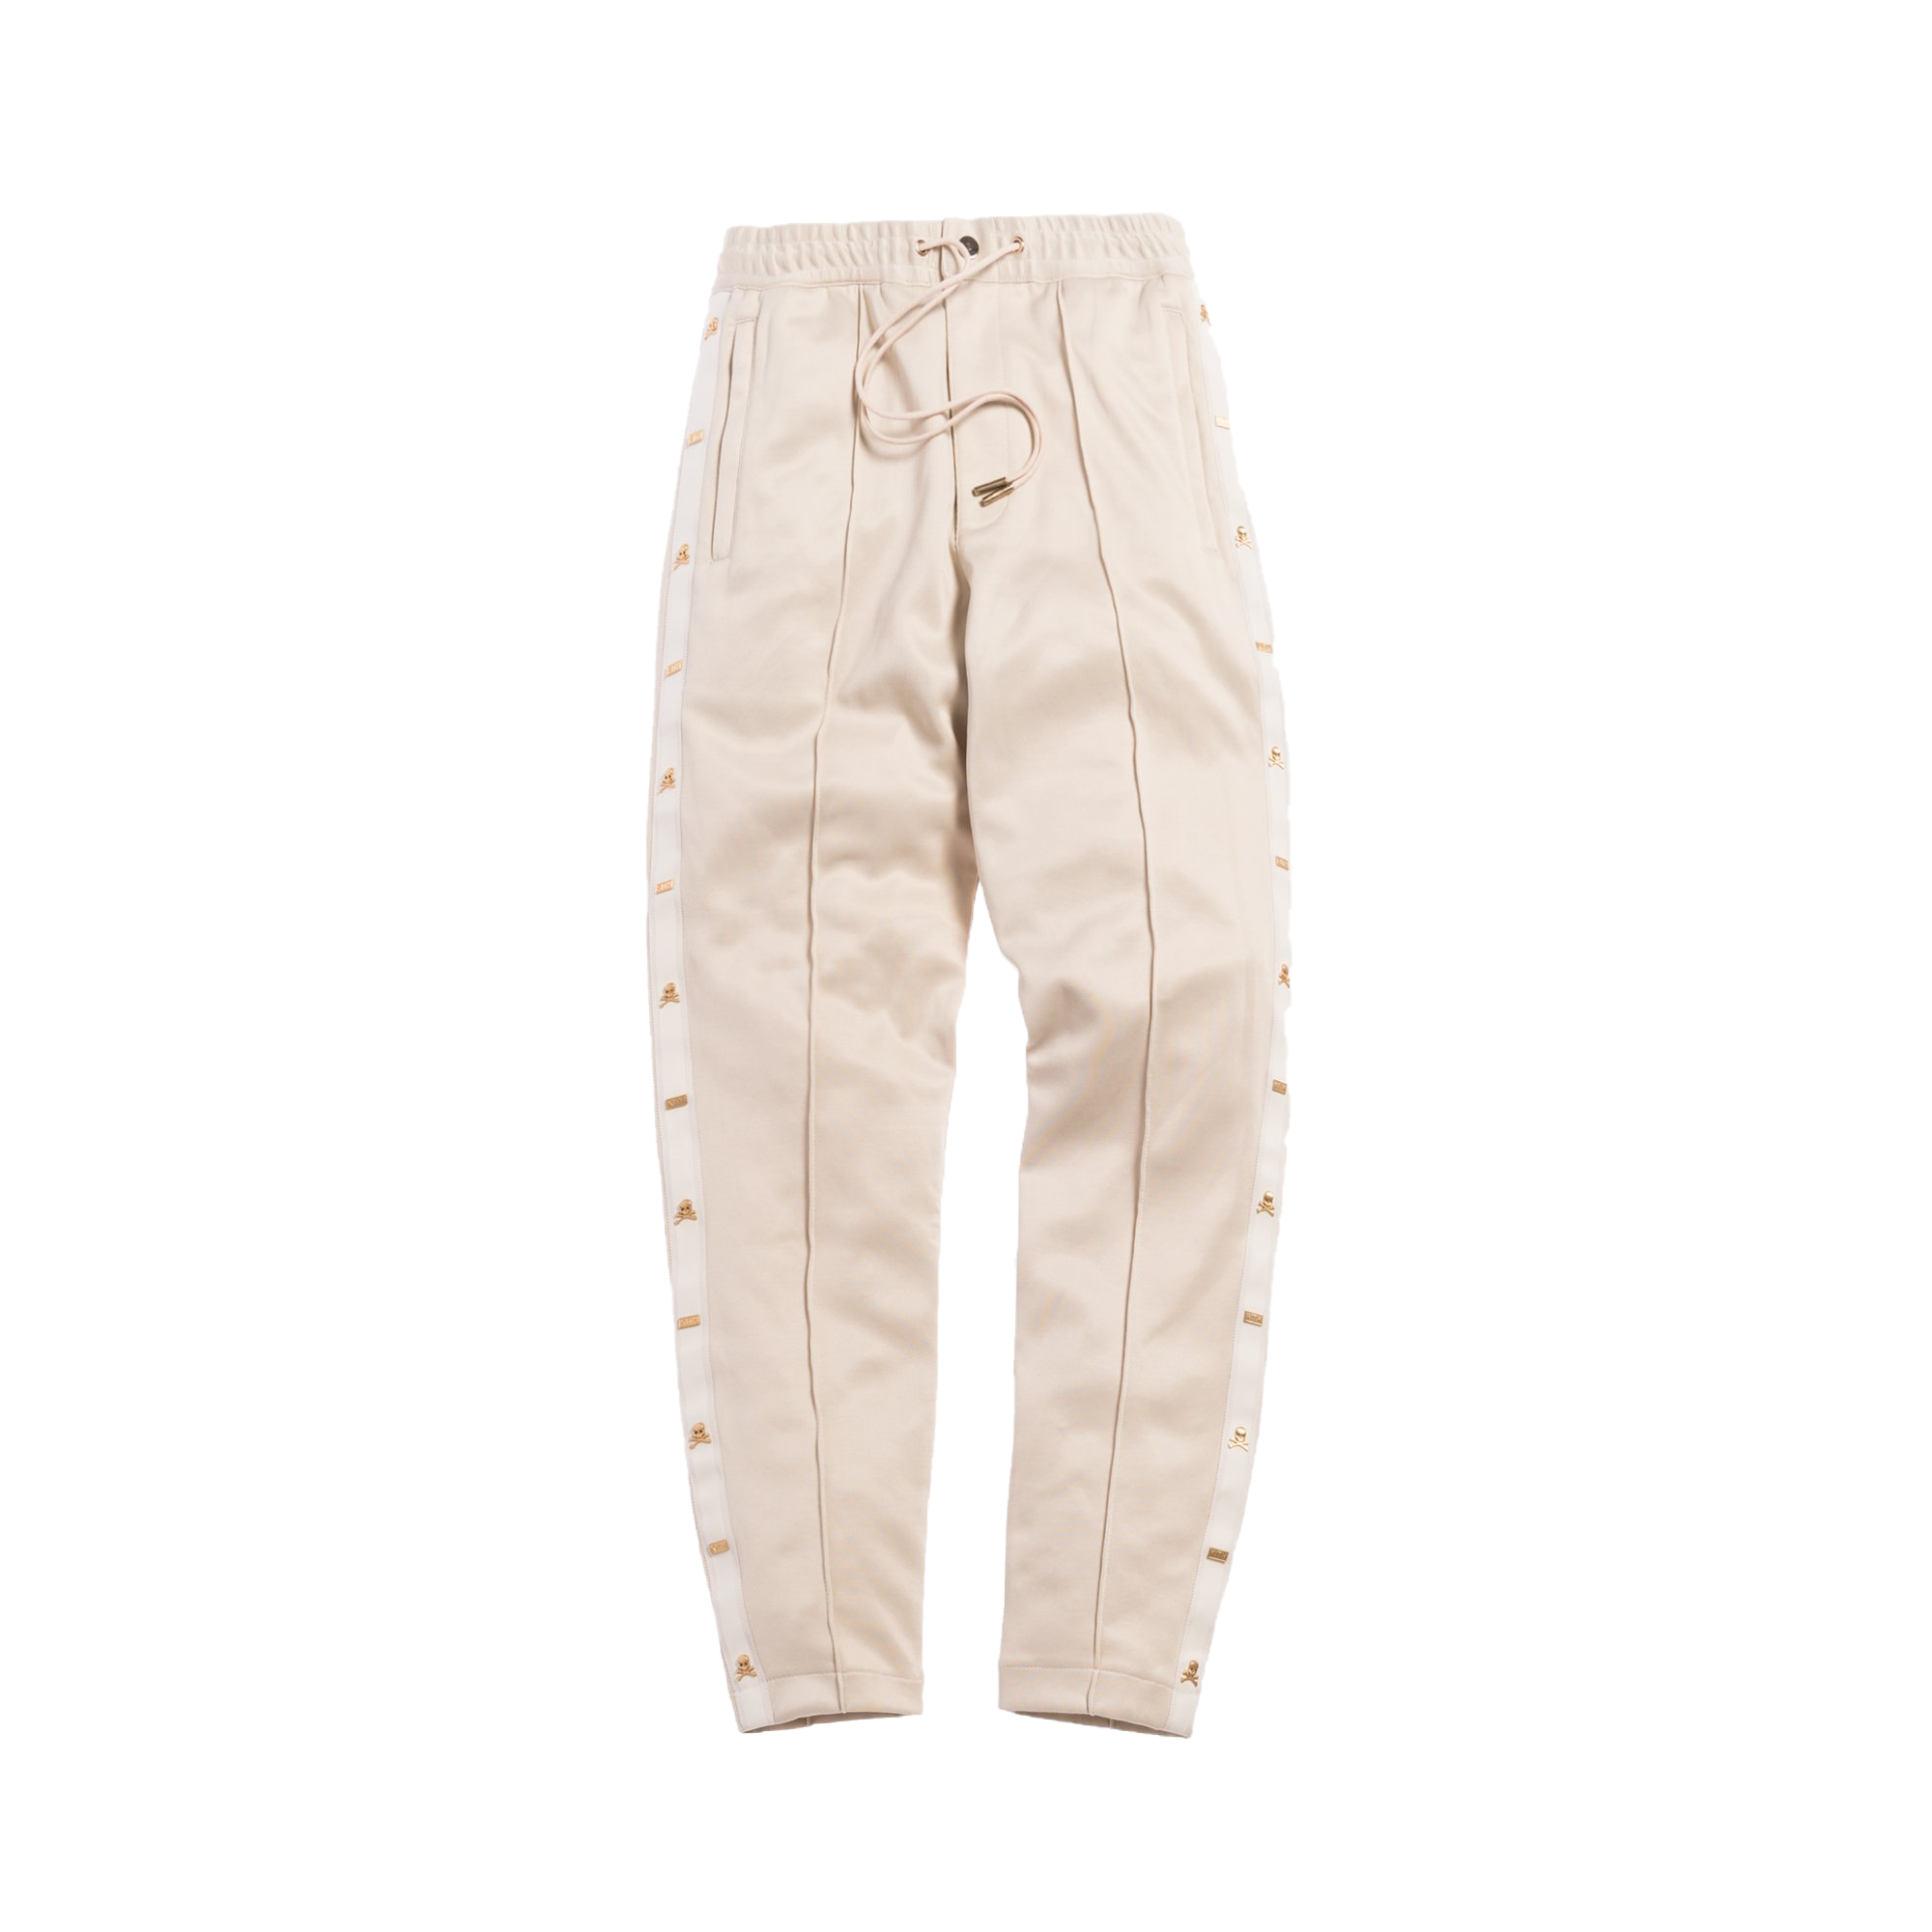 Kith x mastermind WORLD Track Pant Turtle Dove